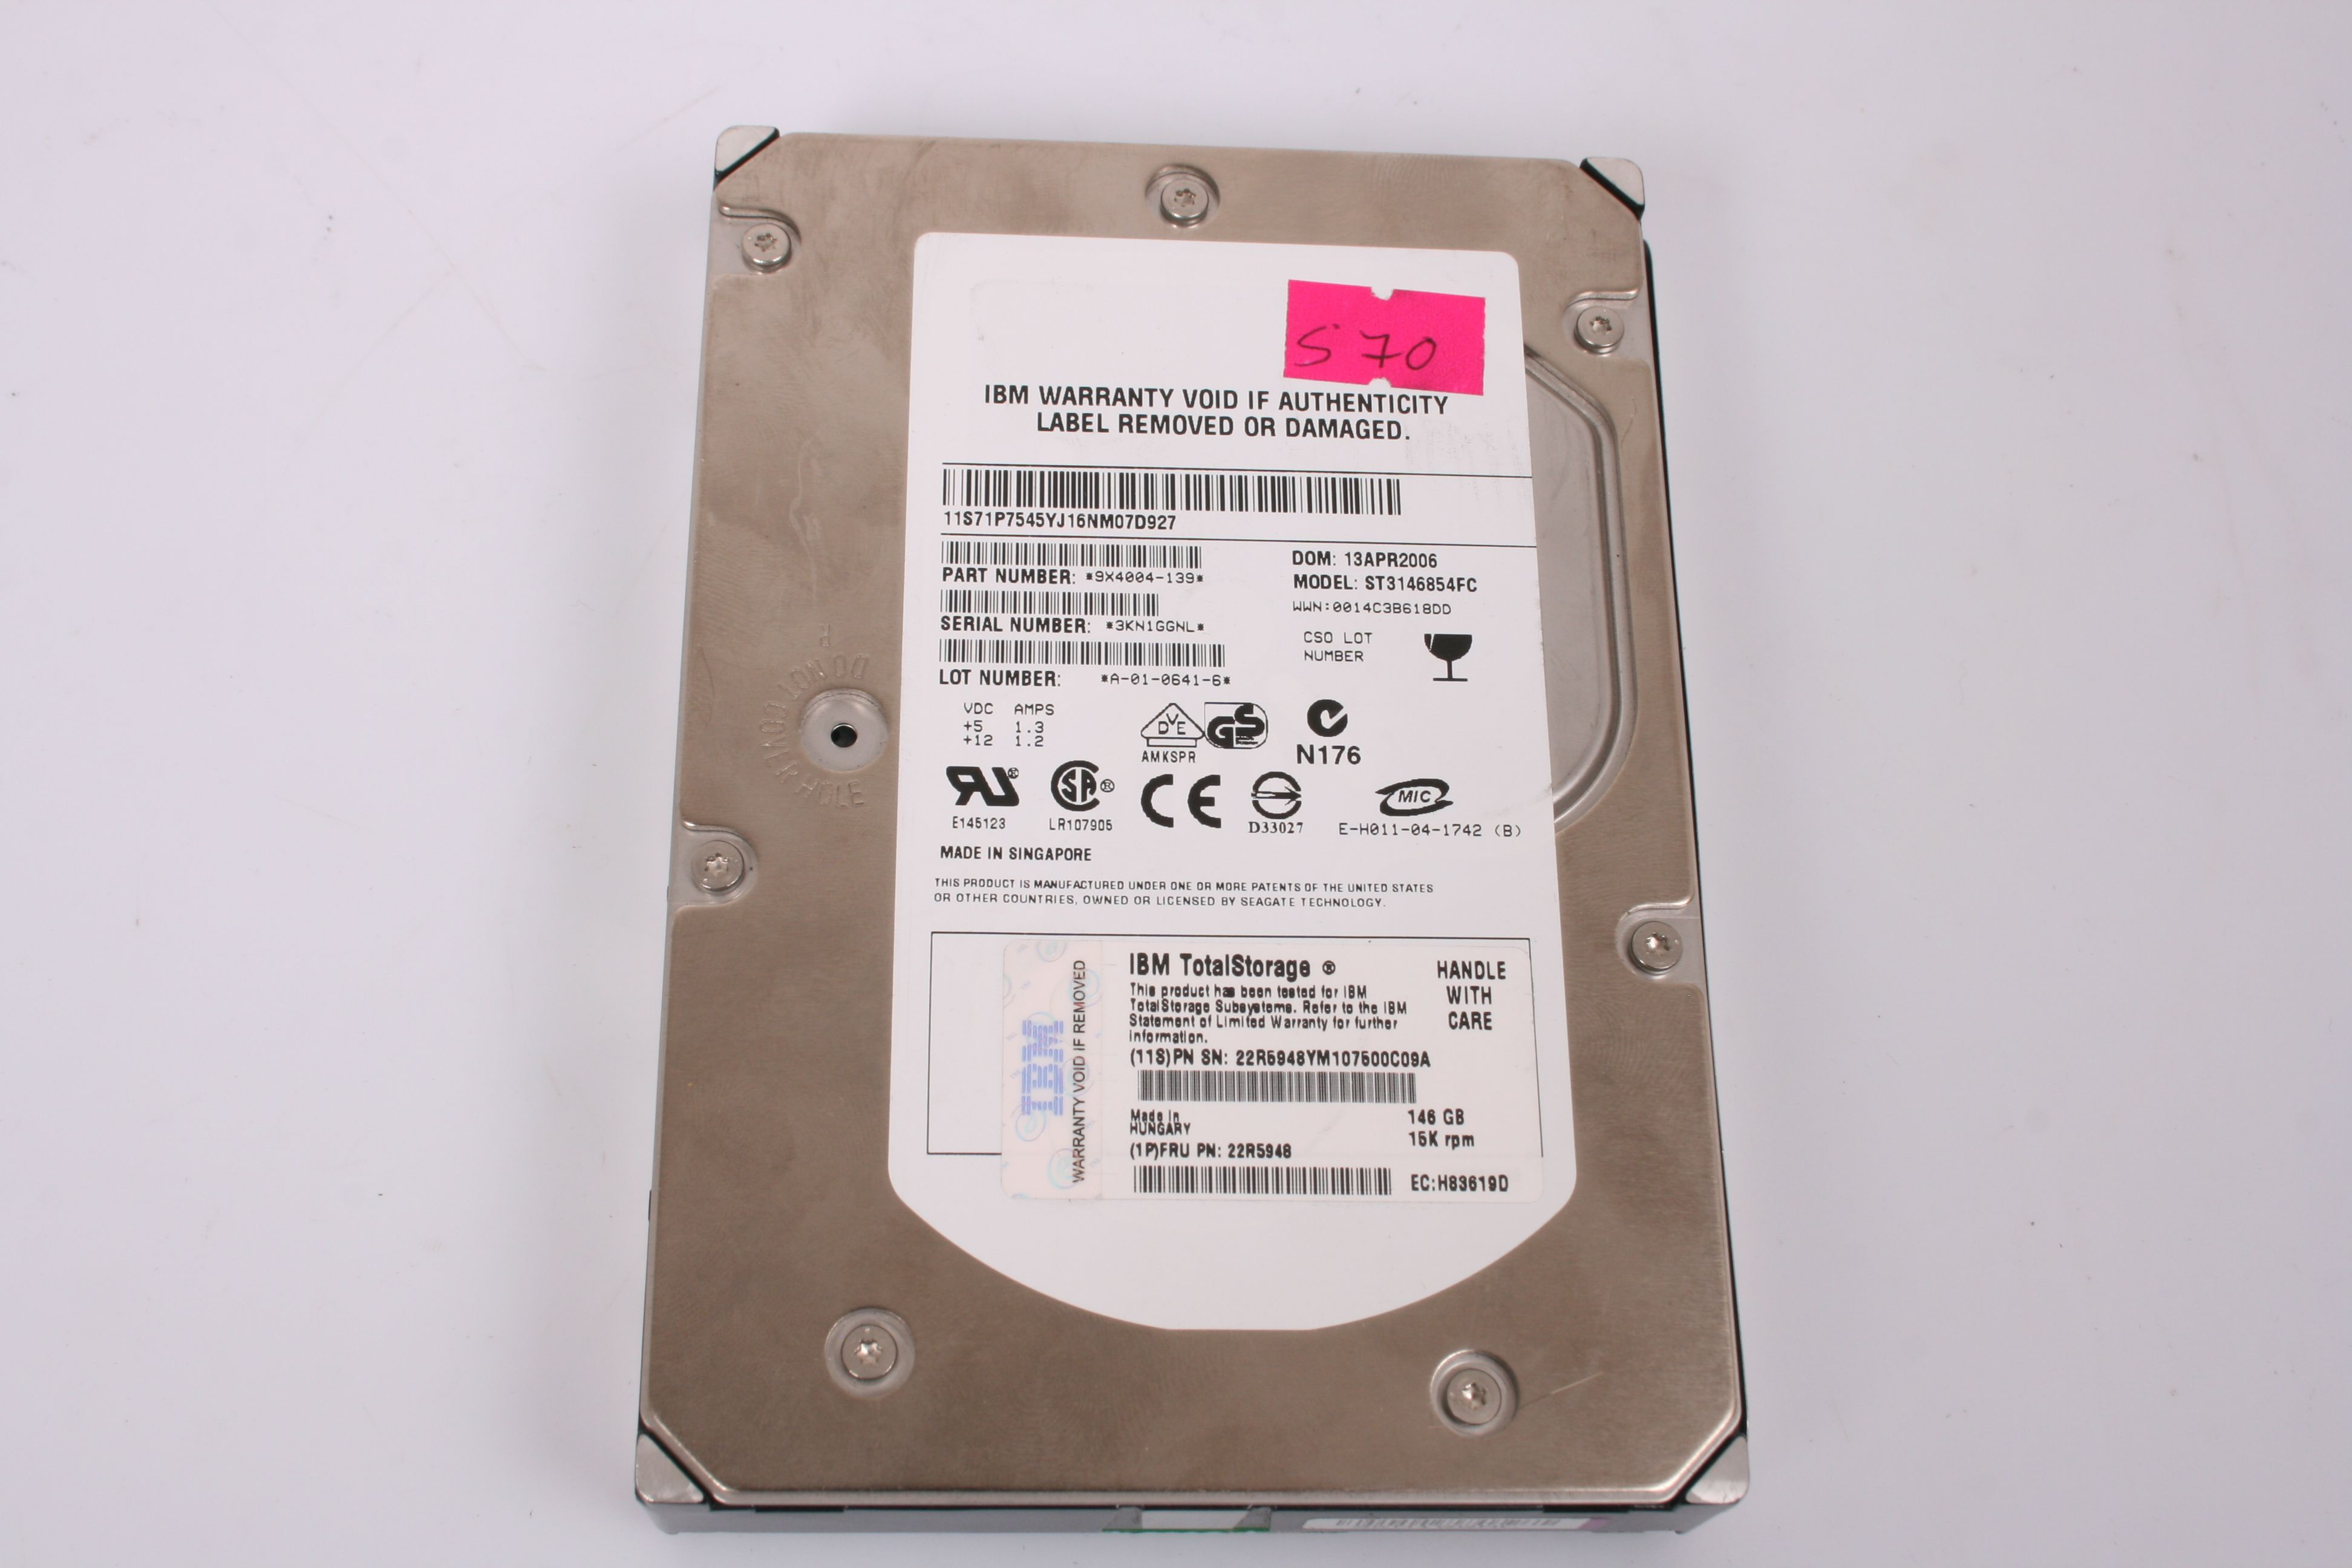 IBM 146GB 15k Rpm Channel Hard Drive 22R5948